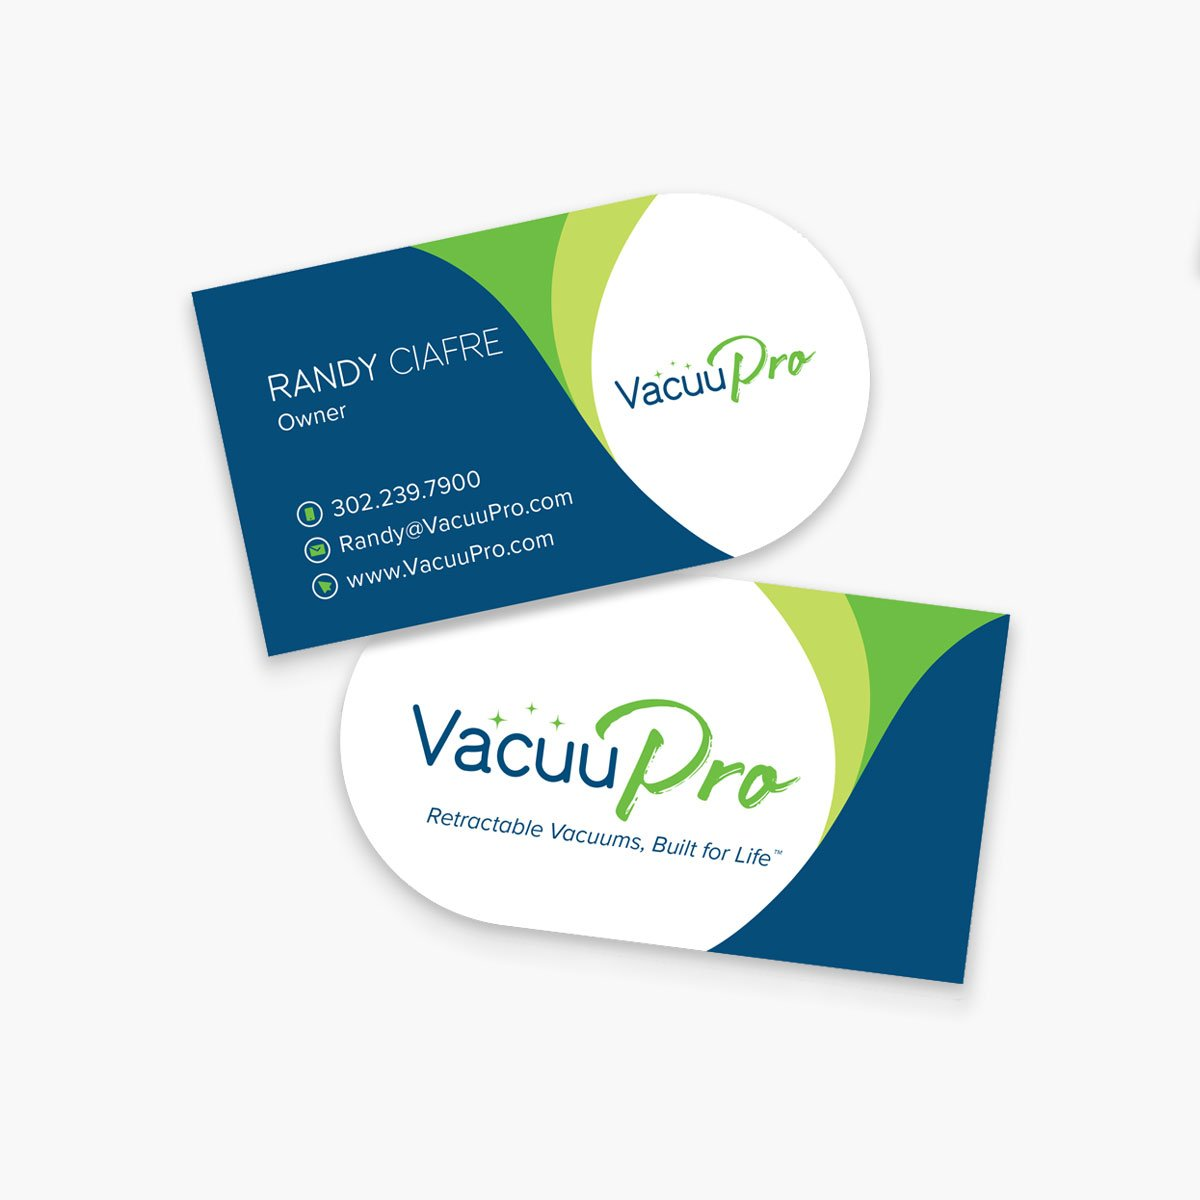 Vacuupro Business Cards Design by BrandSwan, a graphic design company